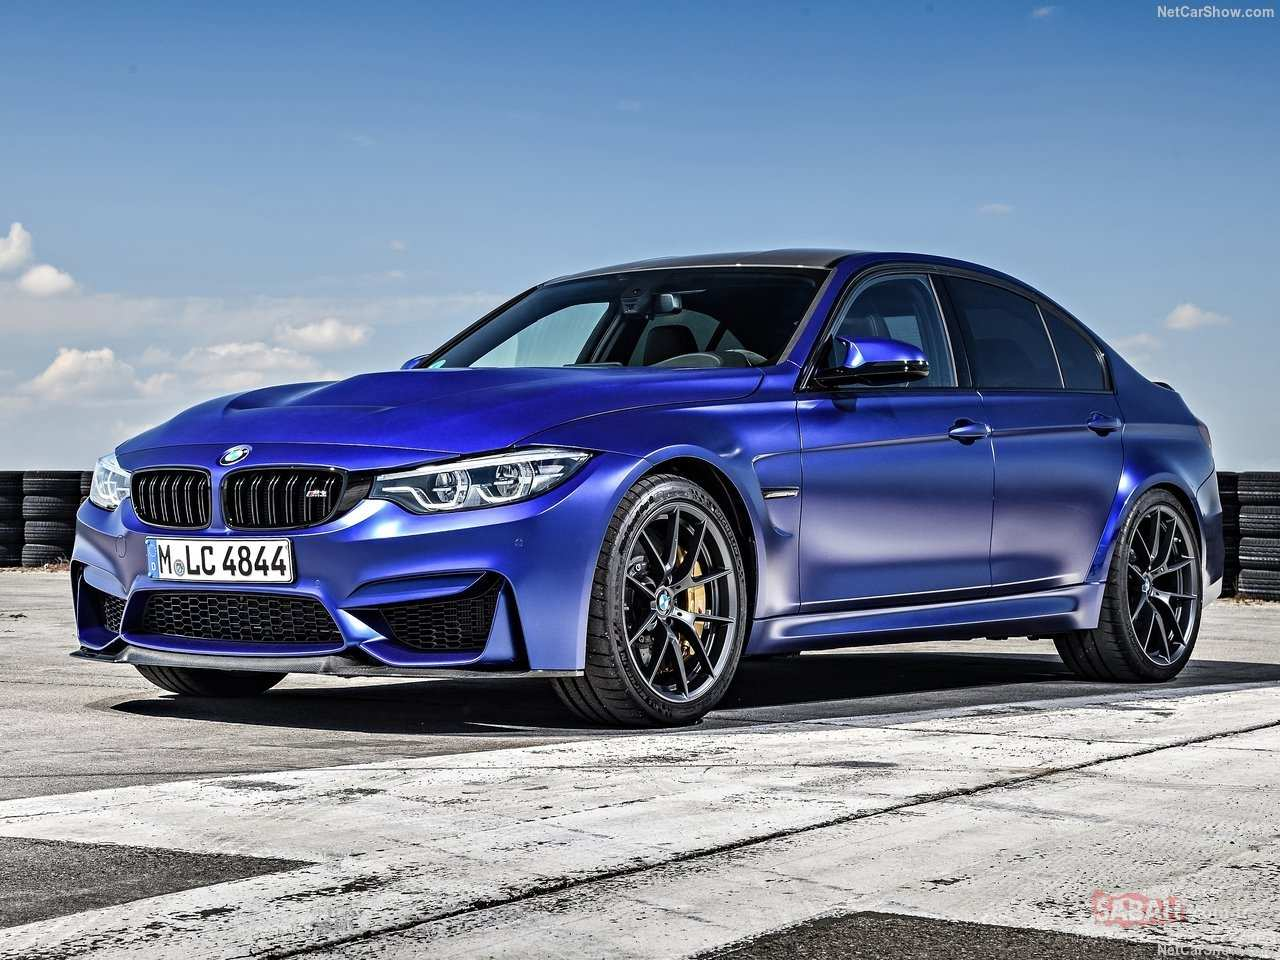 58 Great 2020 Bmw M3 Price Interior for 2020 Bmw M3 Price